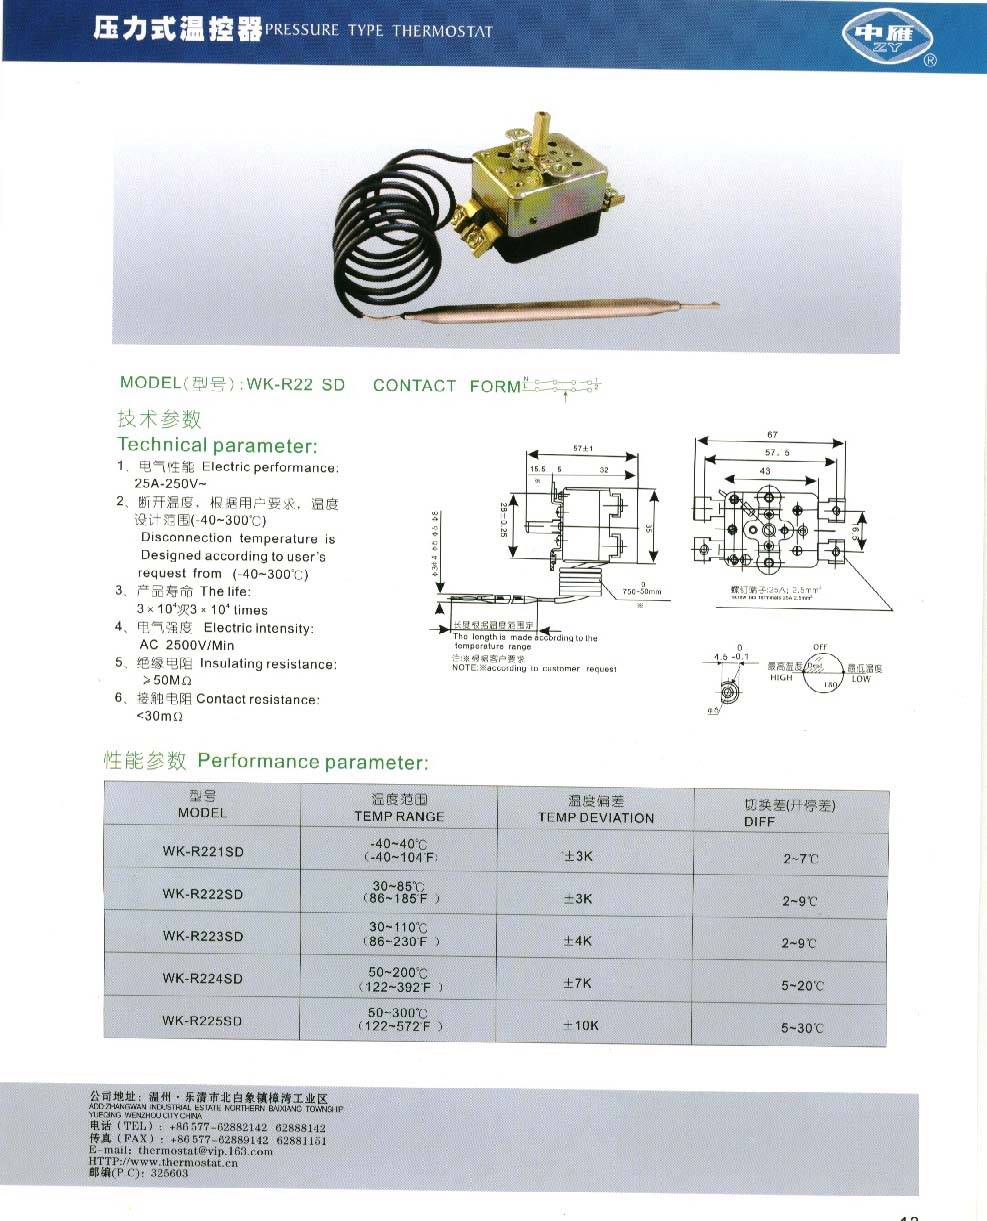 Thermostat WK-R22 SD